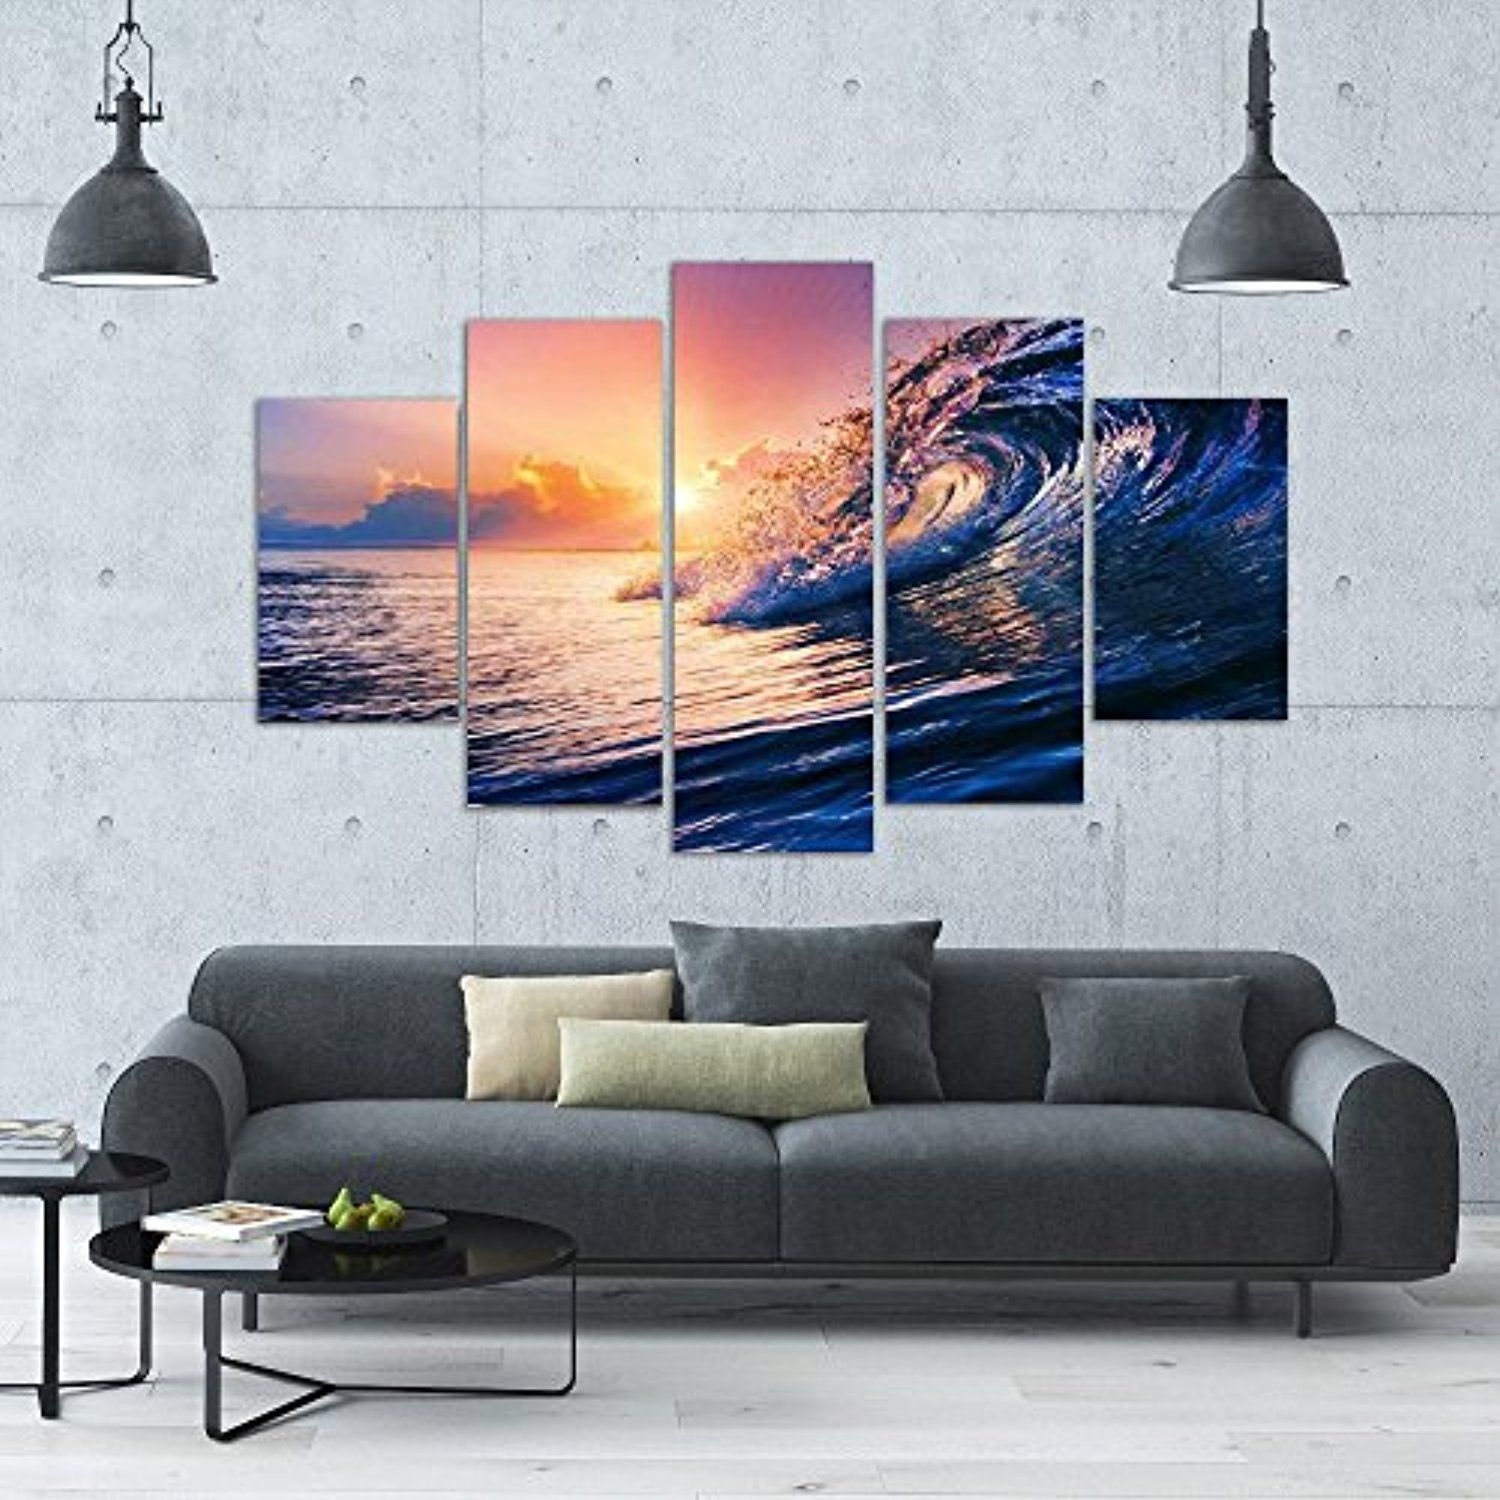 Large premium quality canvas printed wall art poster pieces wall